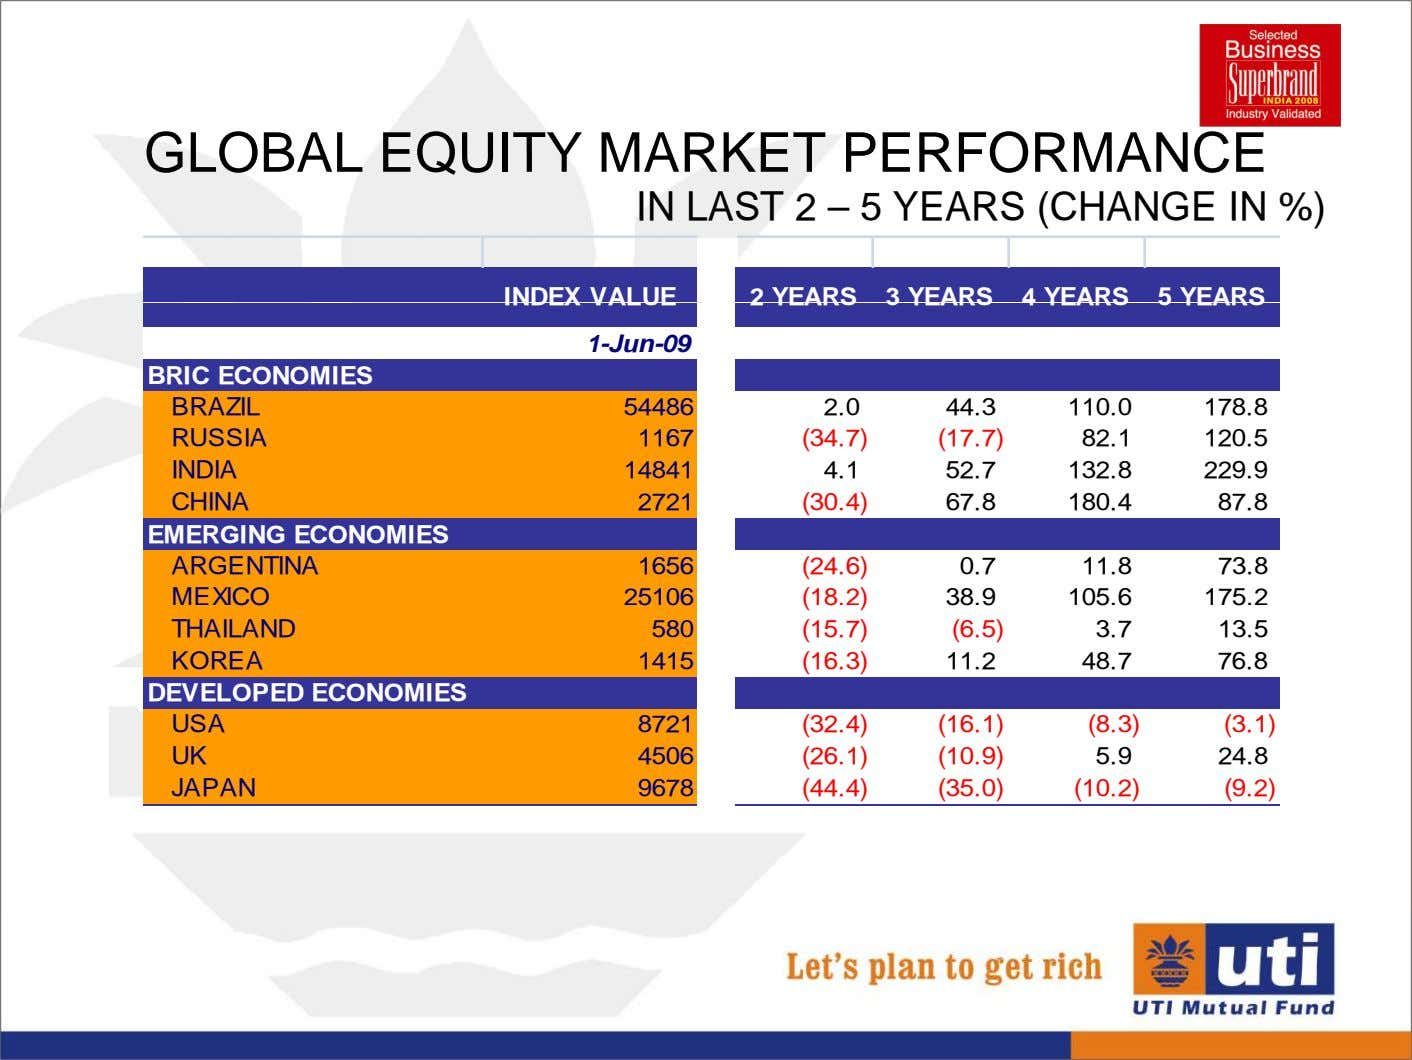 GLOBAL EQUITY MARKET PERFORMANCE IN LAST 2 – 5 YEARS (CHANGE IN %) INDEX VALUE